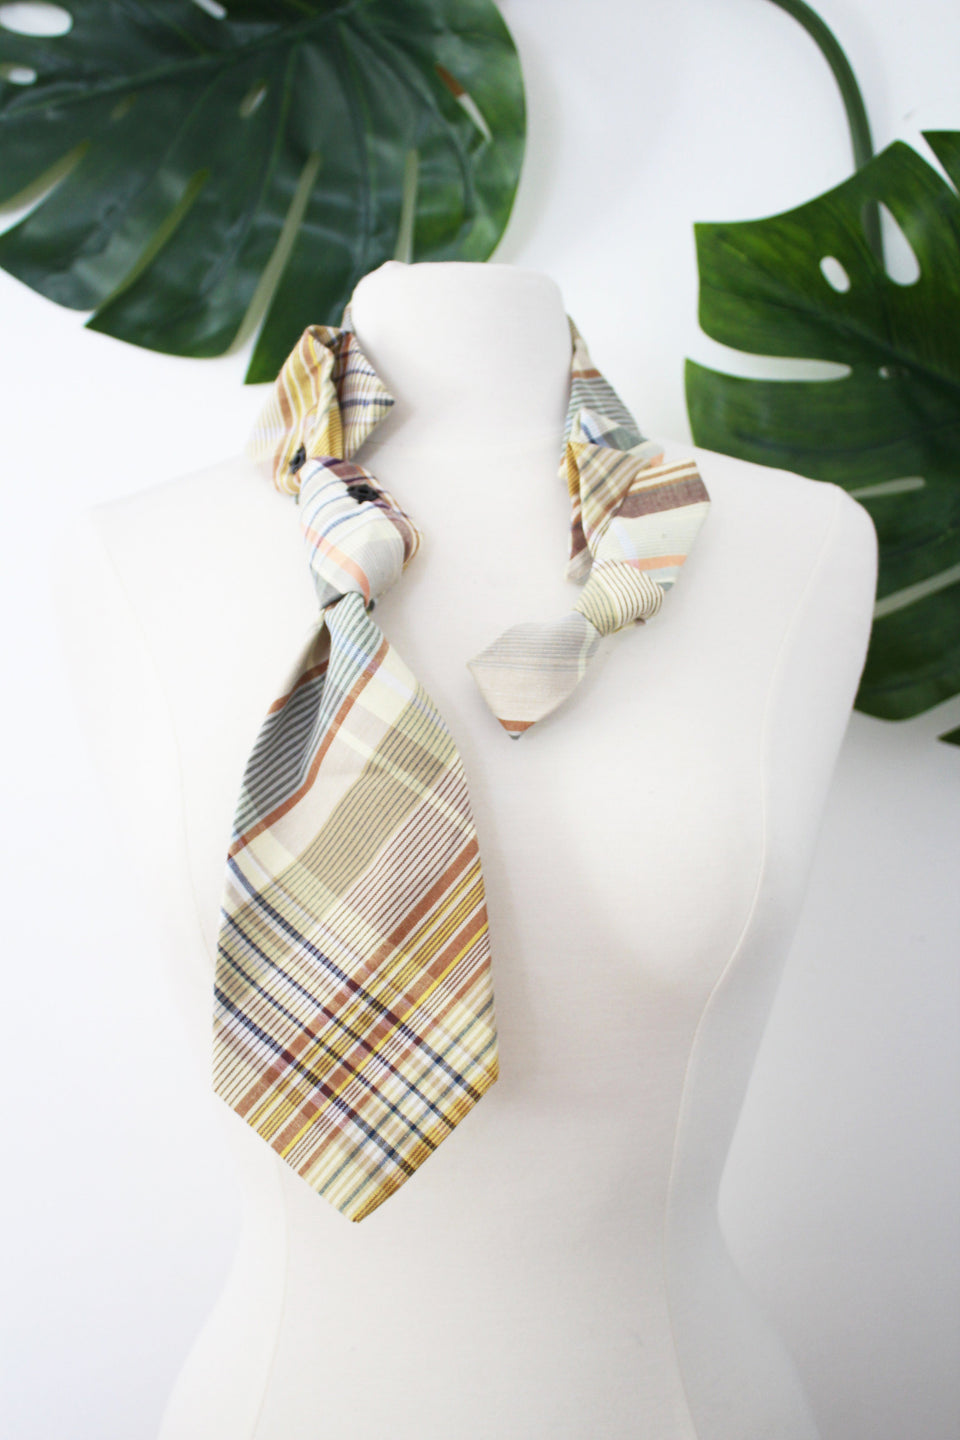 Handmade Sherlock snap on dapper ruffle scarf necklace refashion from plaid handcrafted neckties